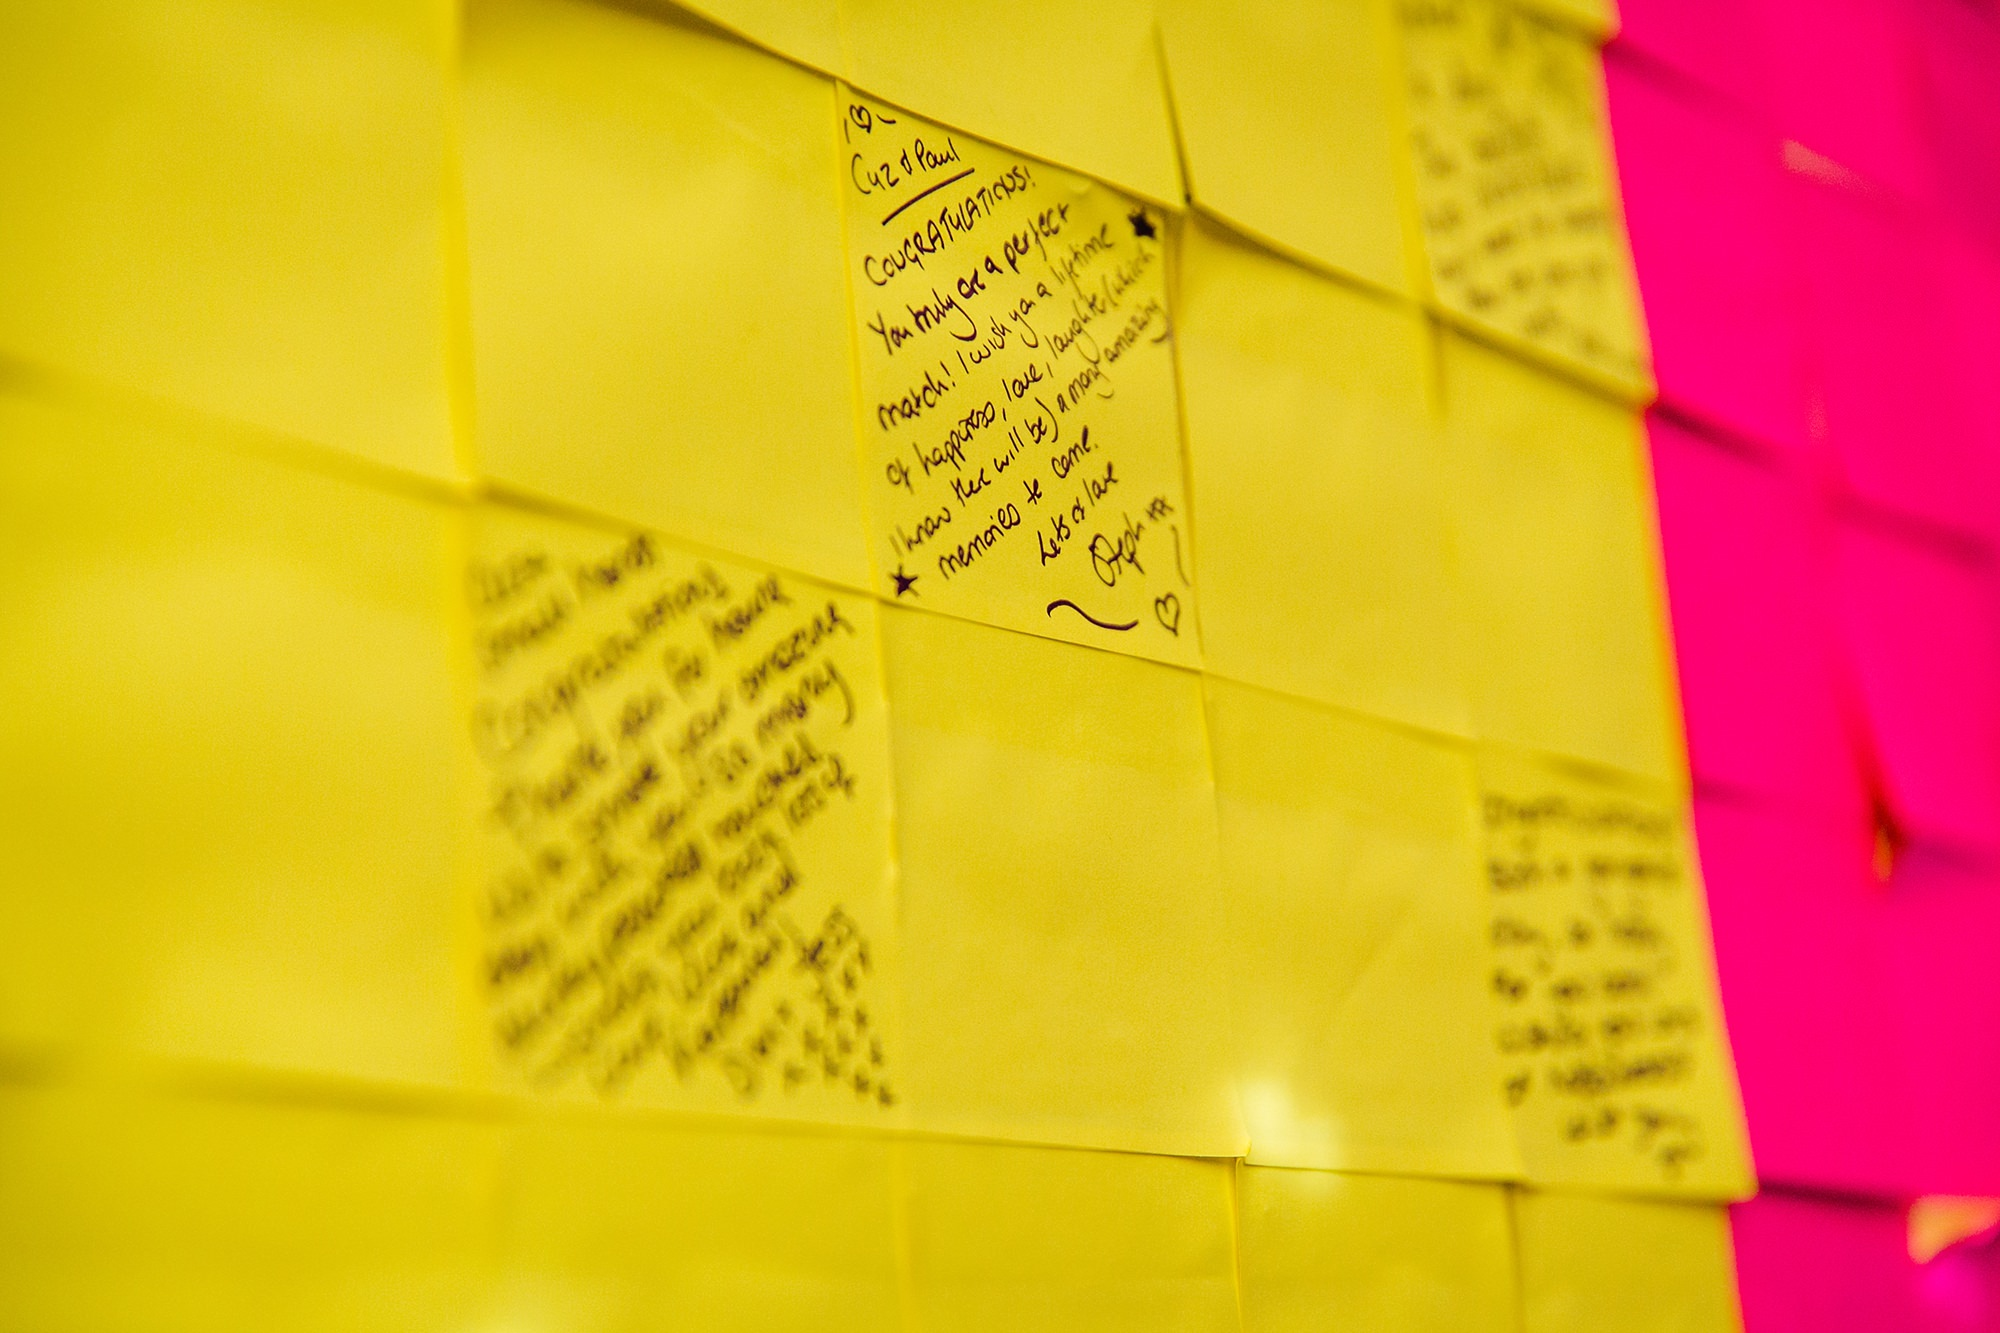 Fun London Wedding messages from guests on post it note sign as wedding guest book